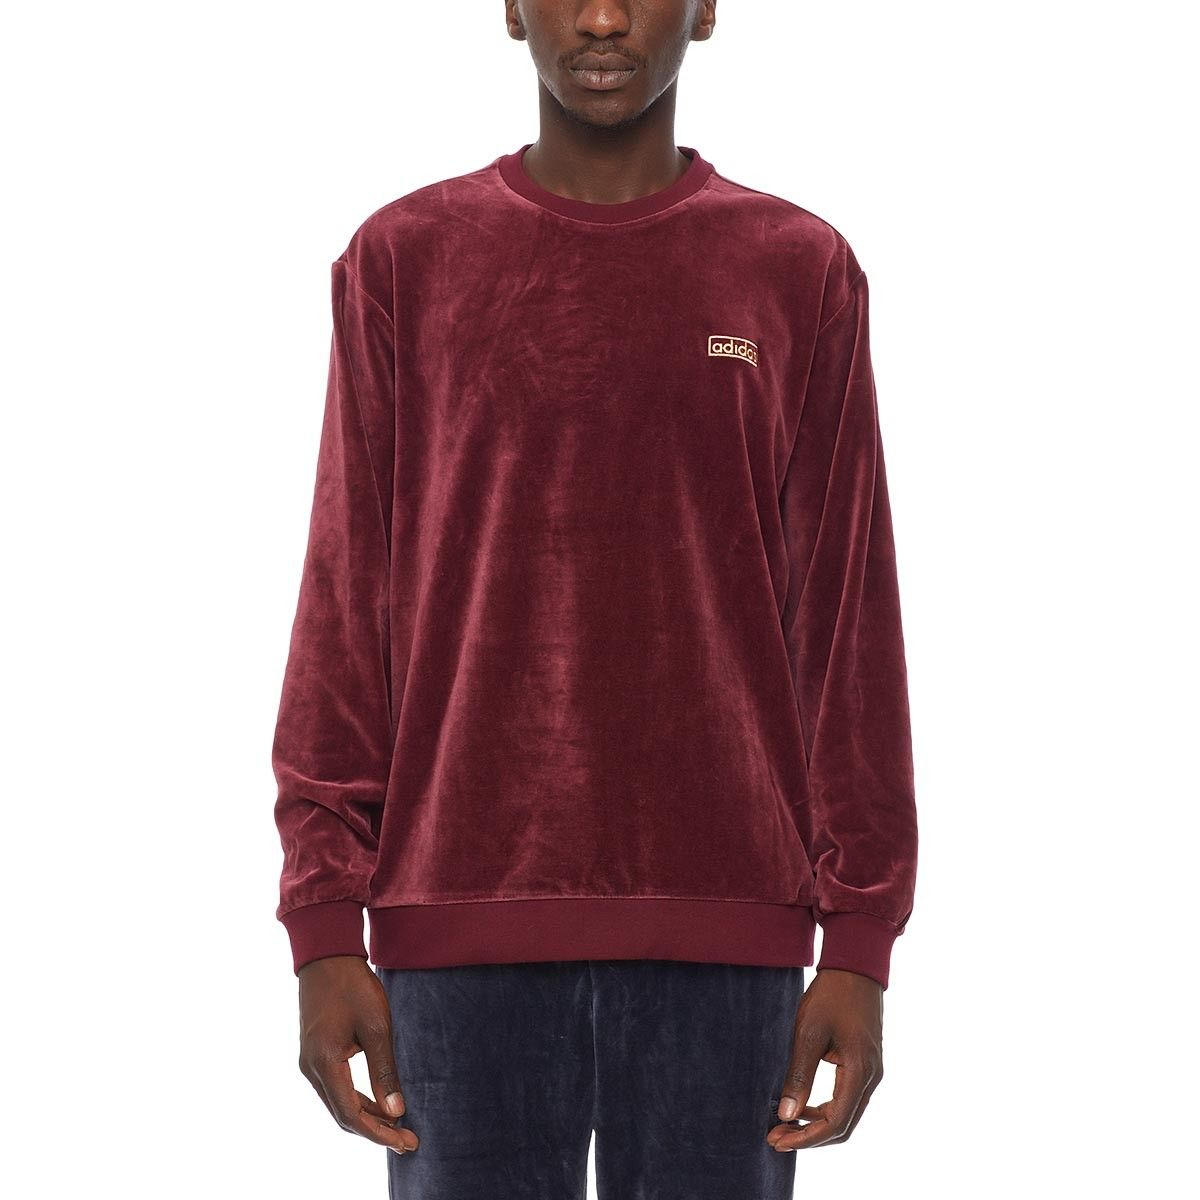 347a75aa0be56 Velour crew sweatshirt from the F W2016-17 Adidas Originals collection in  maroon